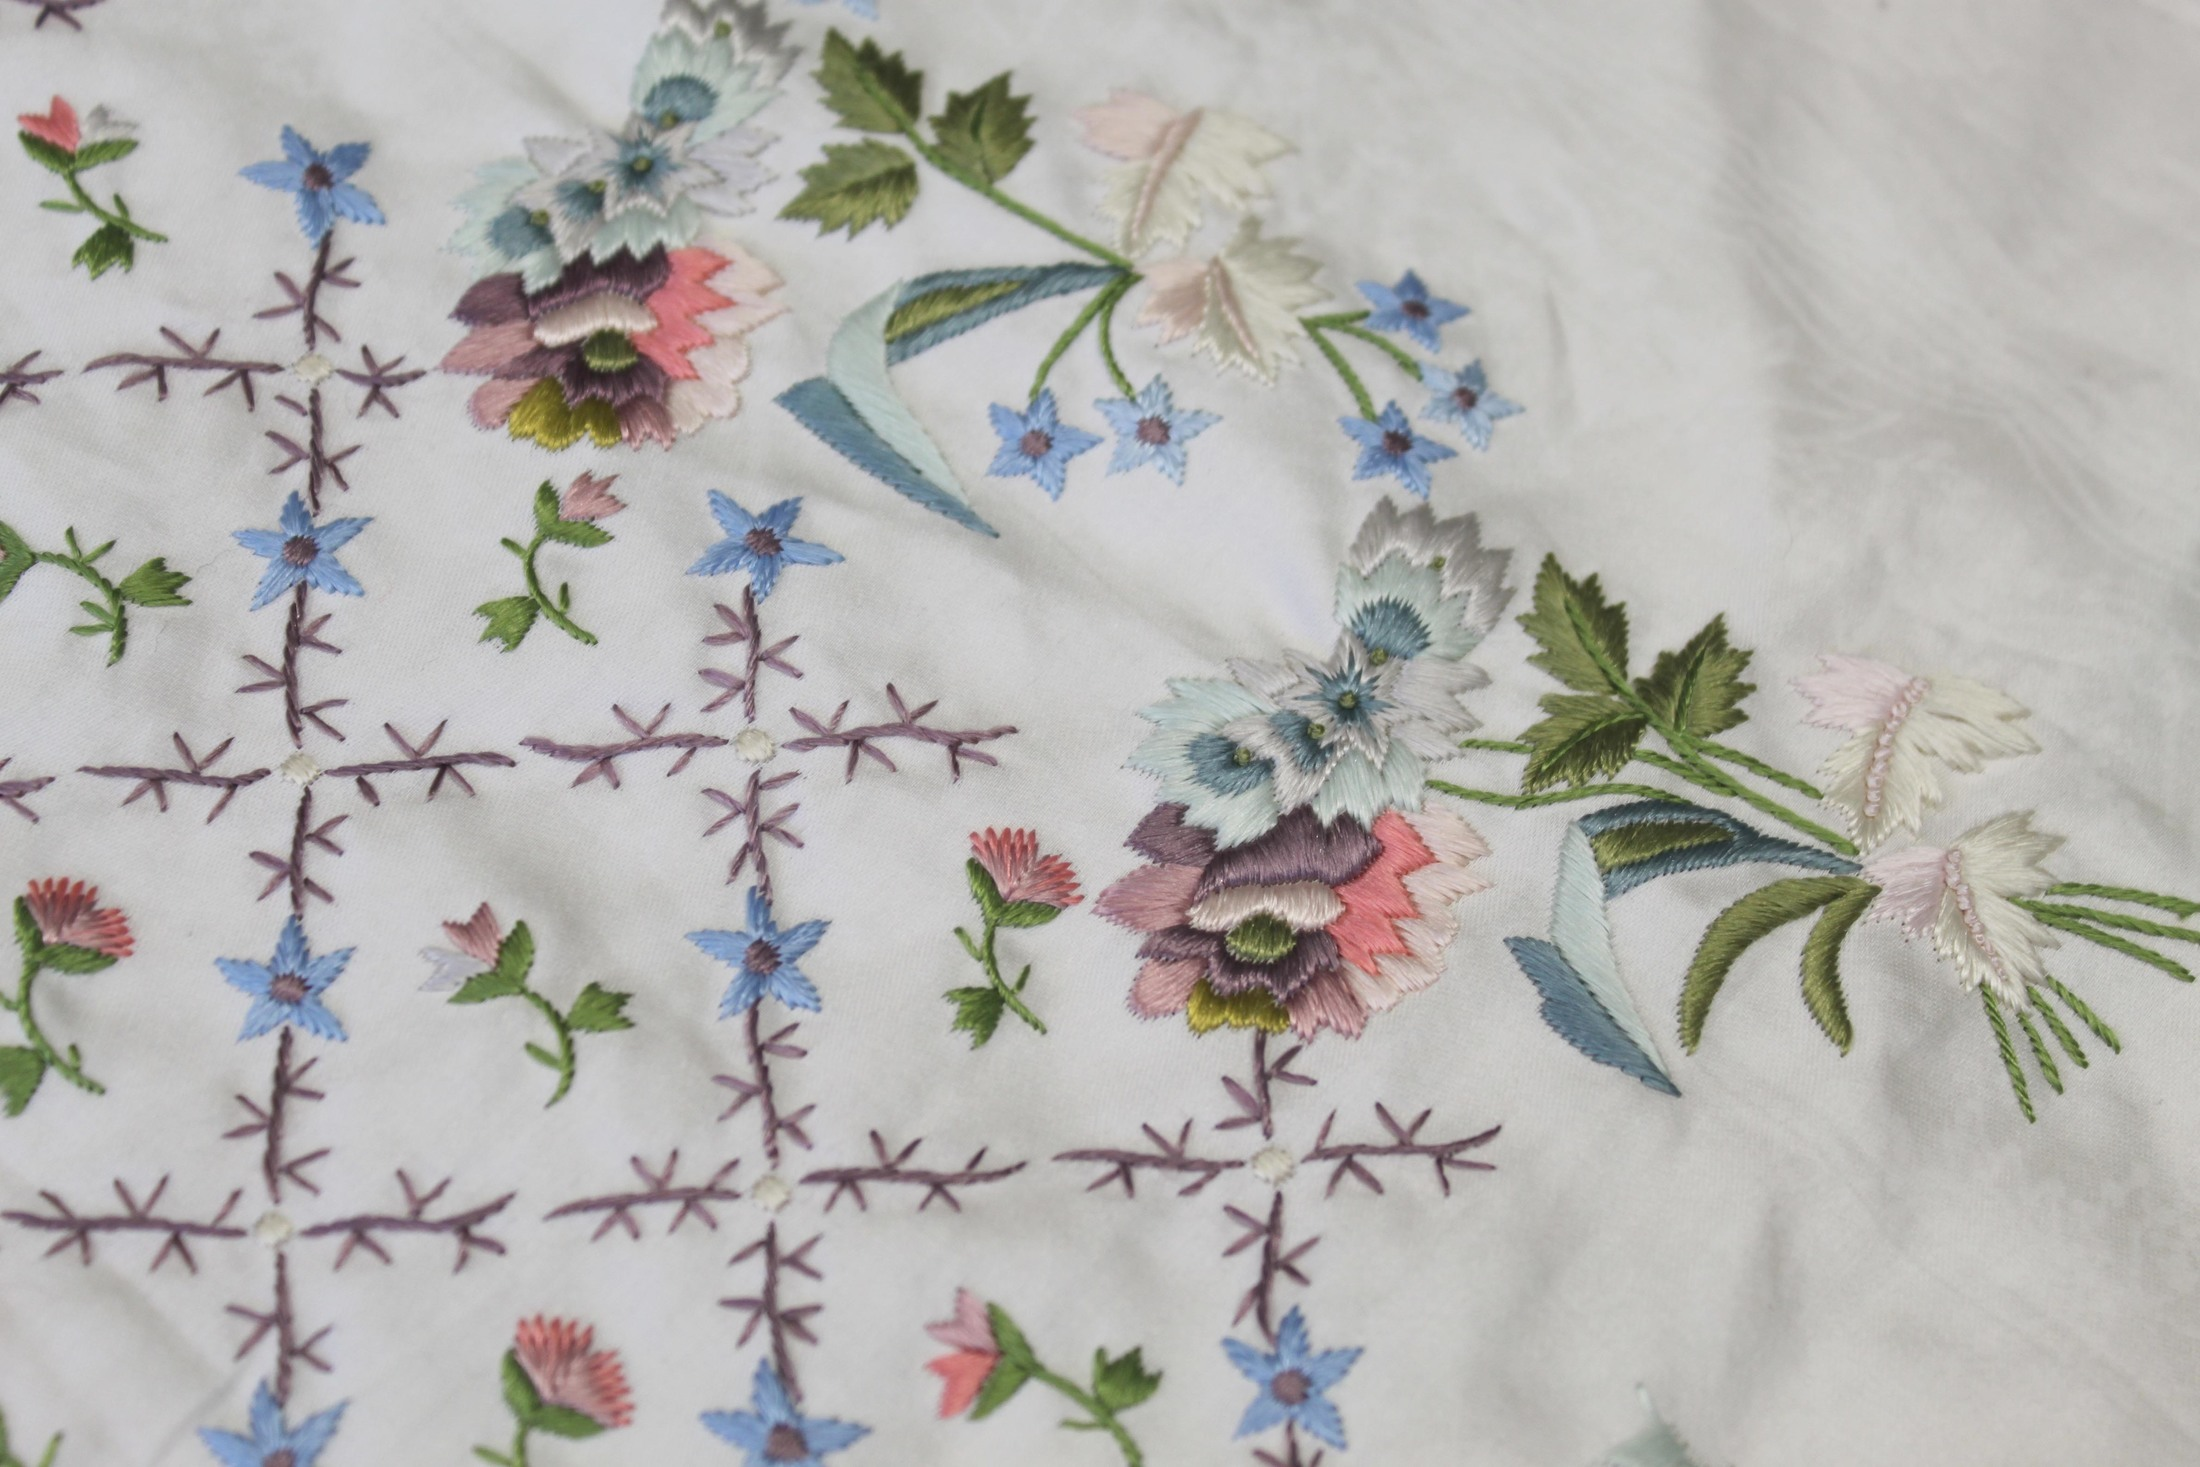 Hawthorne & Heaney and 'The Tailor of Gloucester' Waistcoat London Hand Embroidery